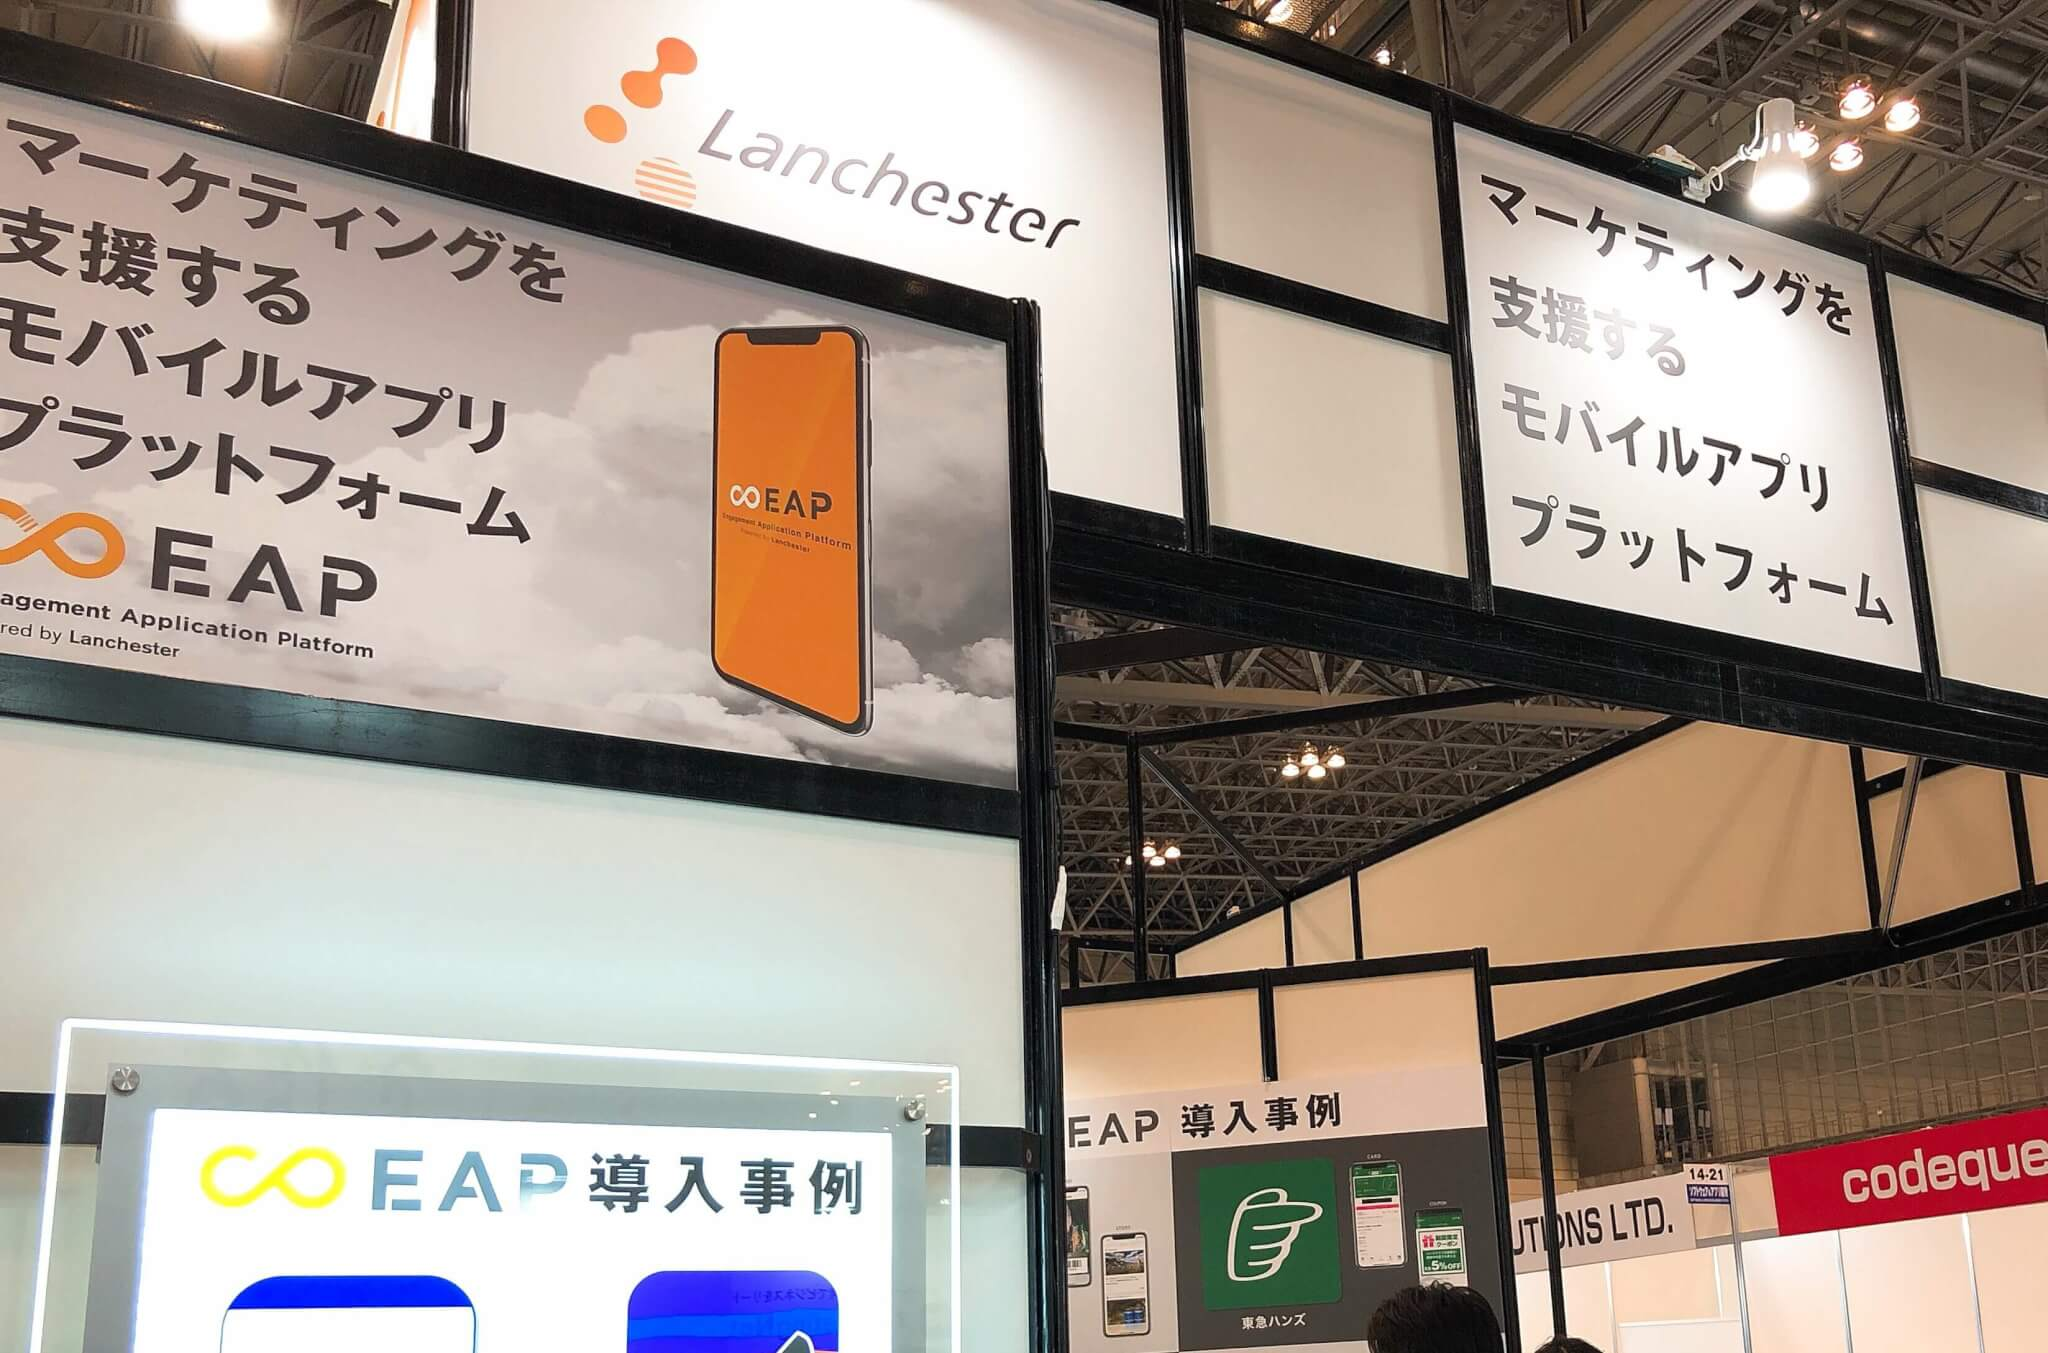 Lanchesterさんのブース